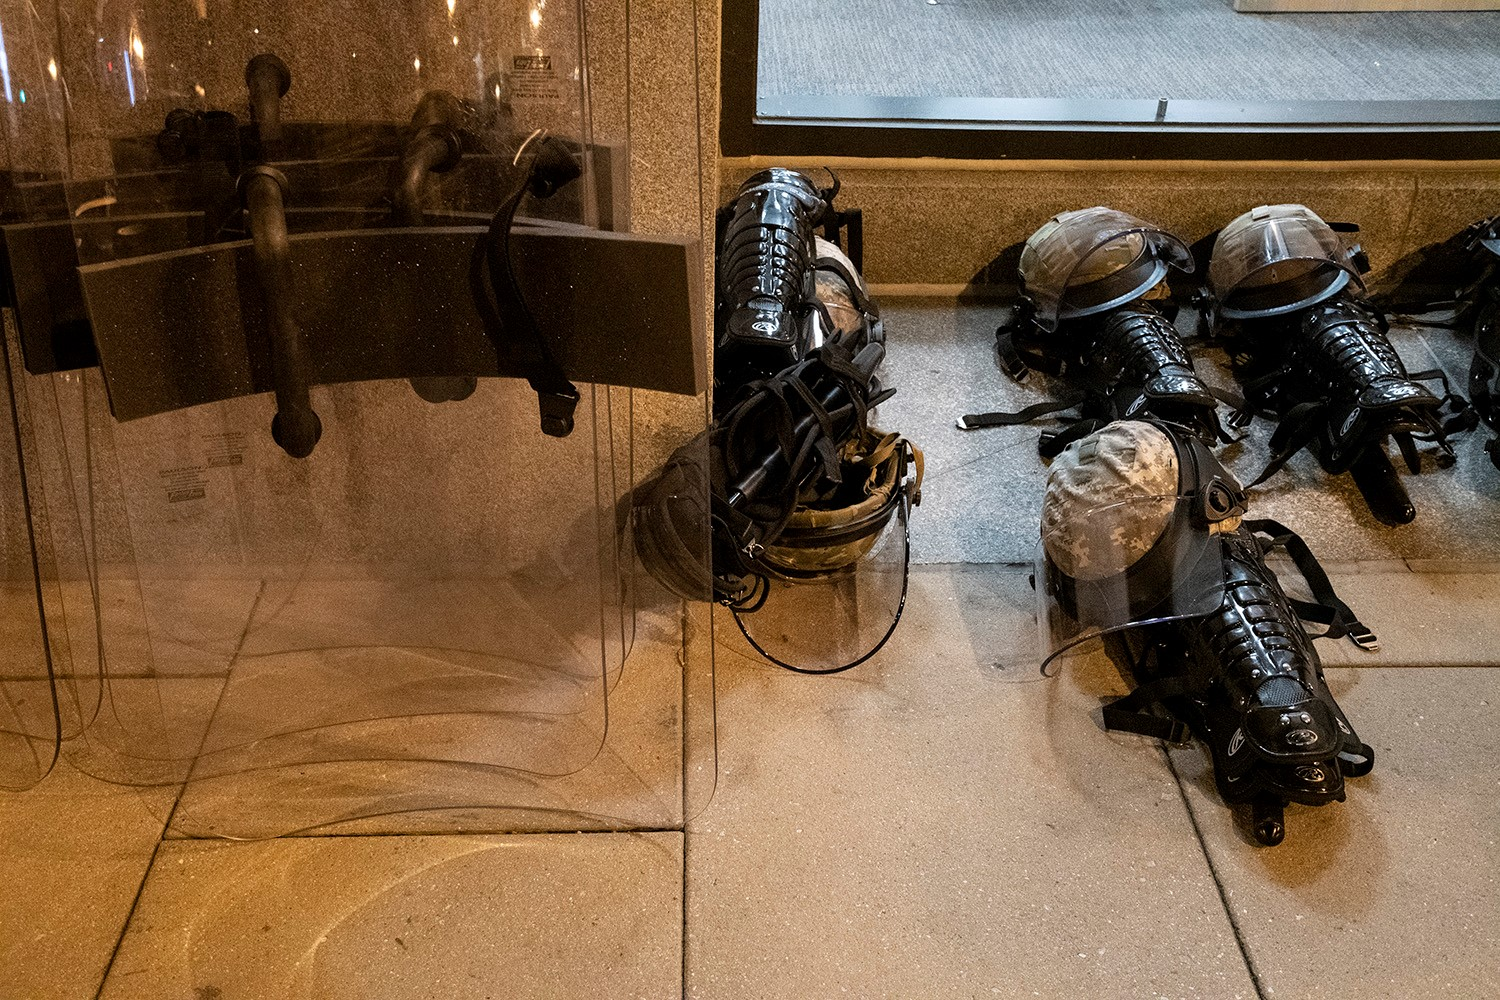 Riot gear, including clear plastic shield, helmets, and armor sit in neatly organized pills on a stone floor.